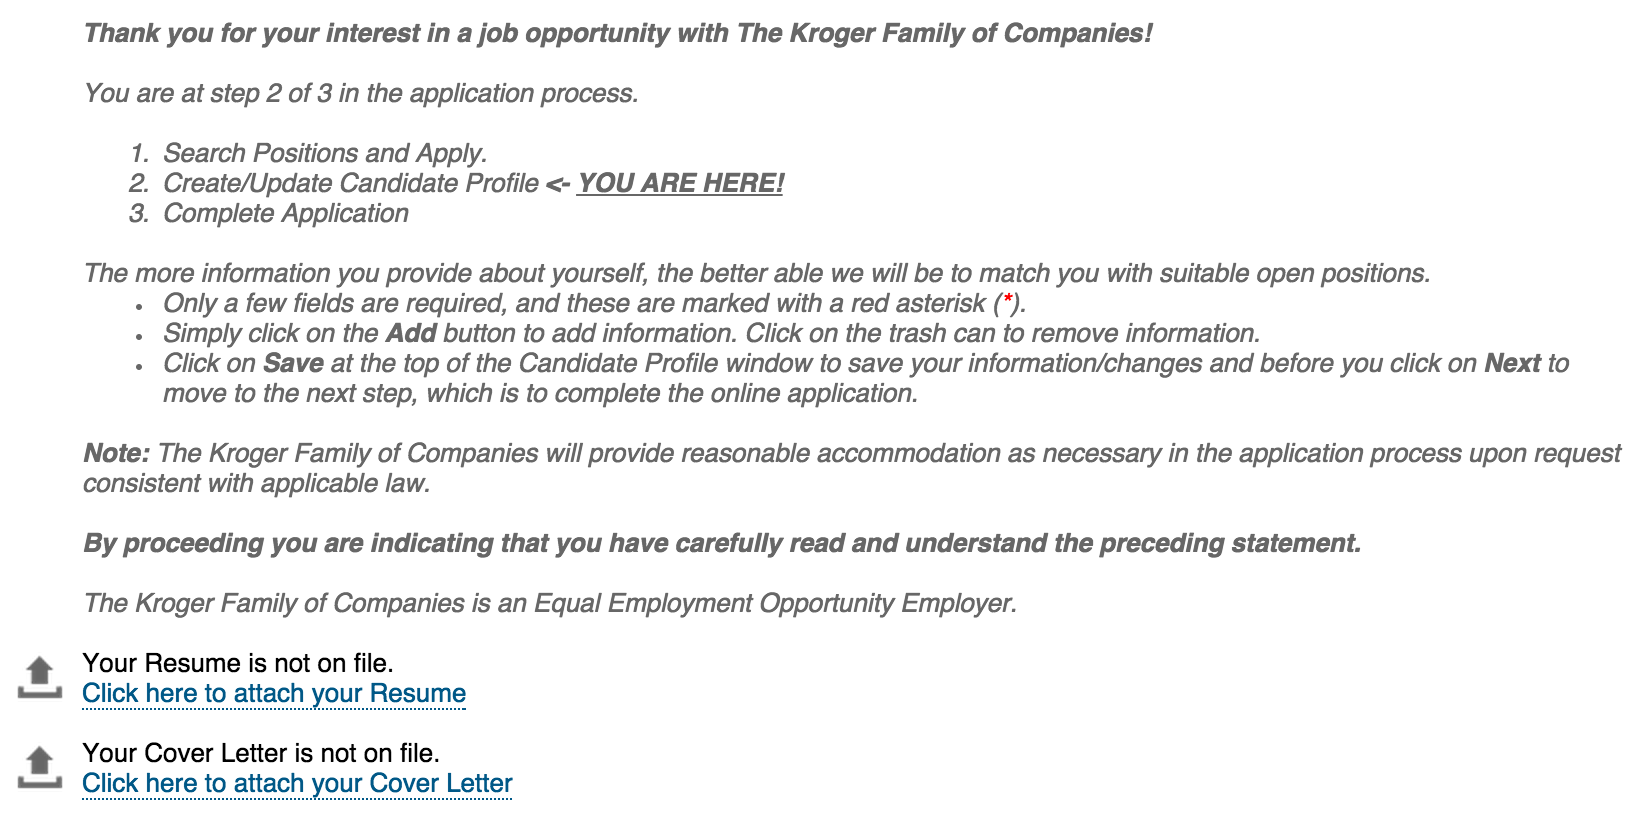 Download Kroger Job Application Form | PDF | FreeDownloads.net